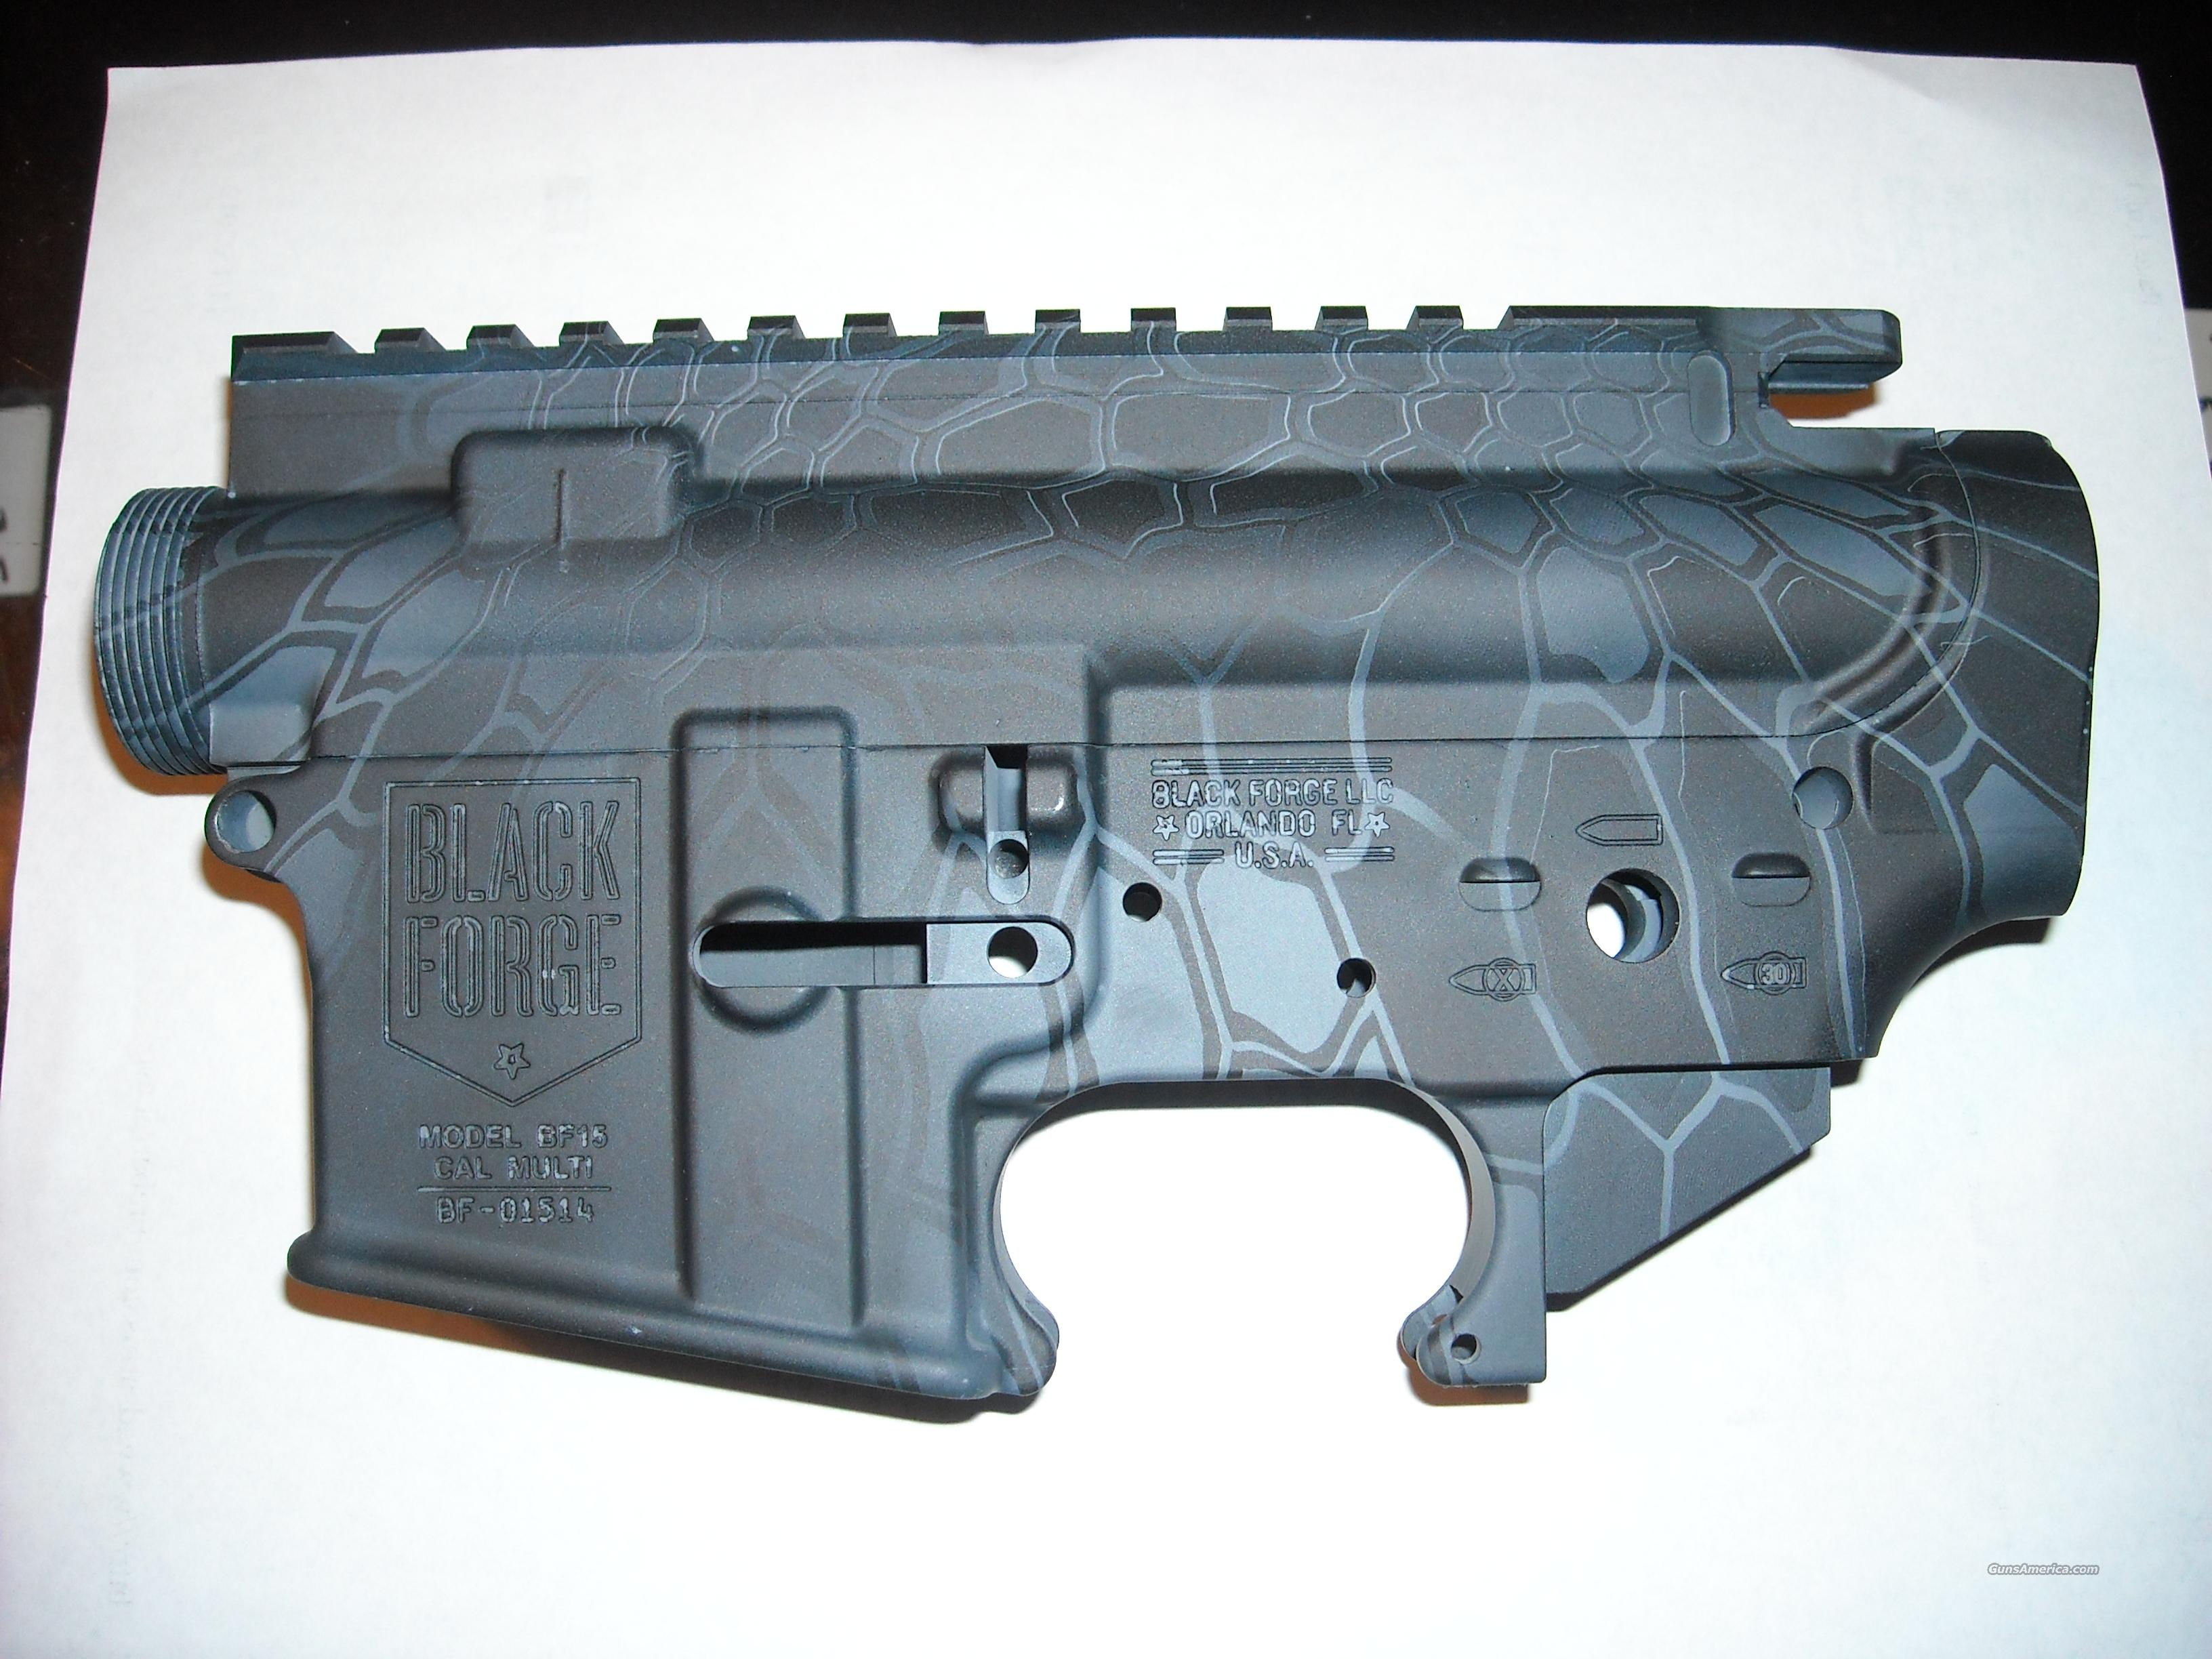 Black Forge Stripped AR15 Upper / Lower Receive... for sale